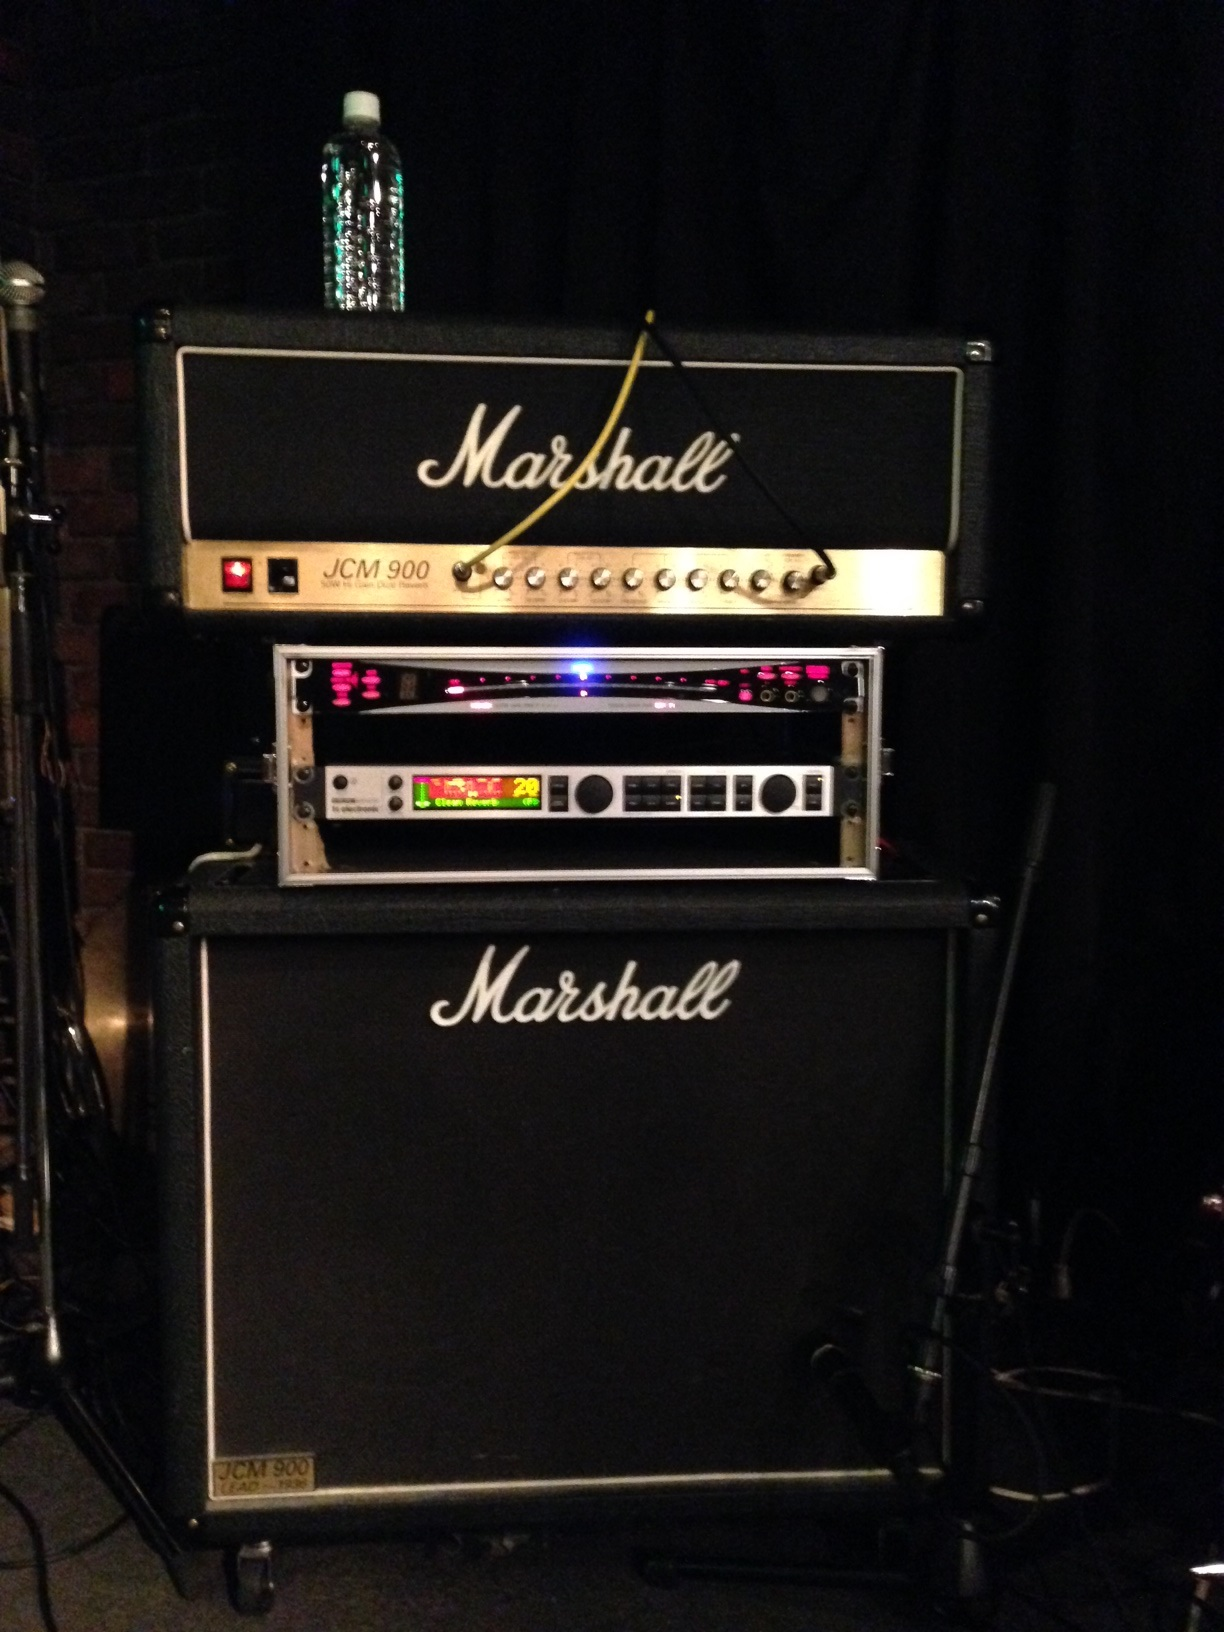 Marshall JCM 900 amp head and speaker cabinet